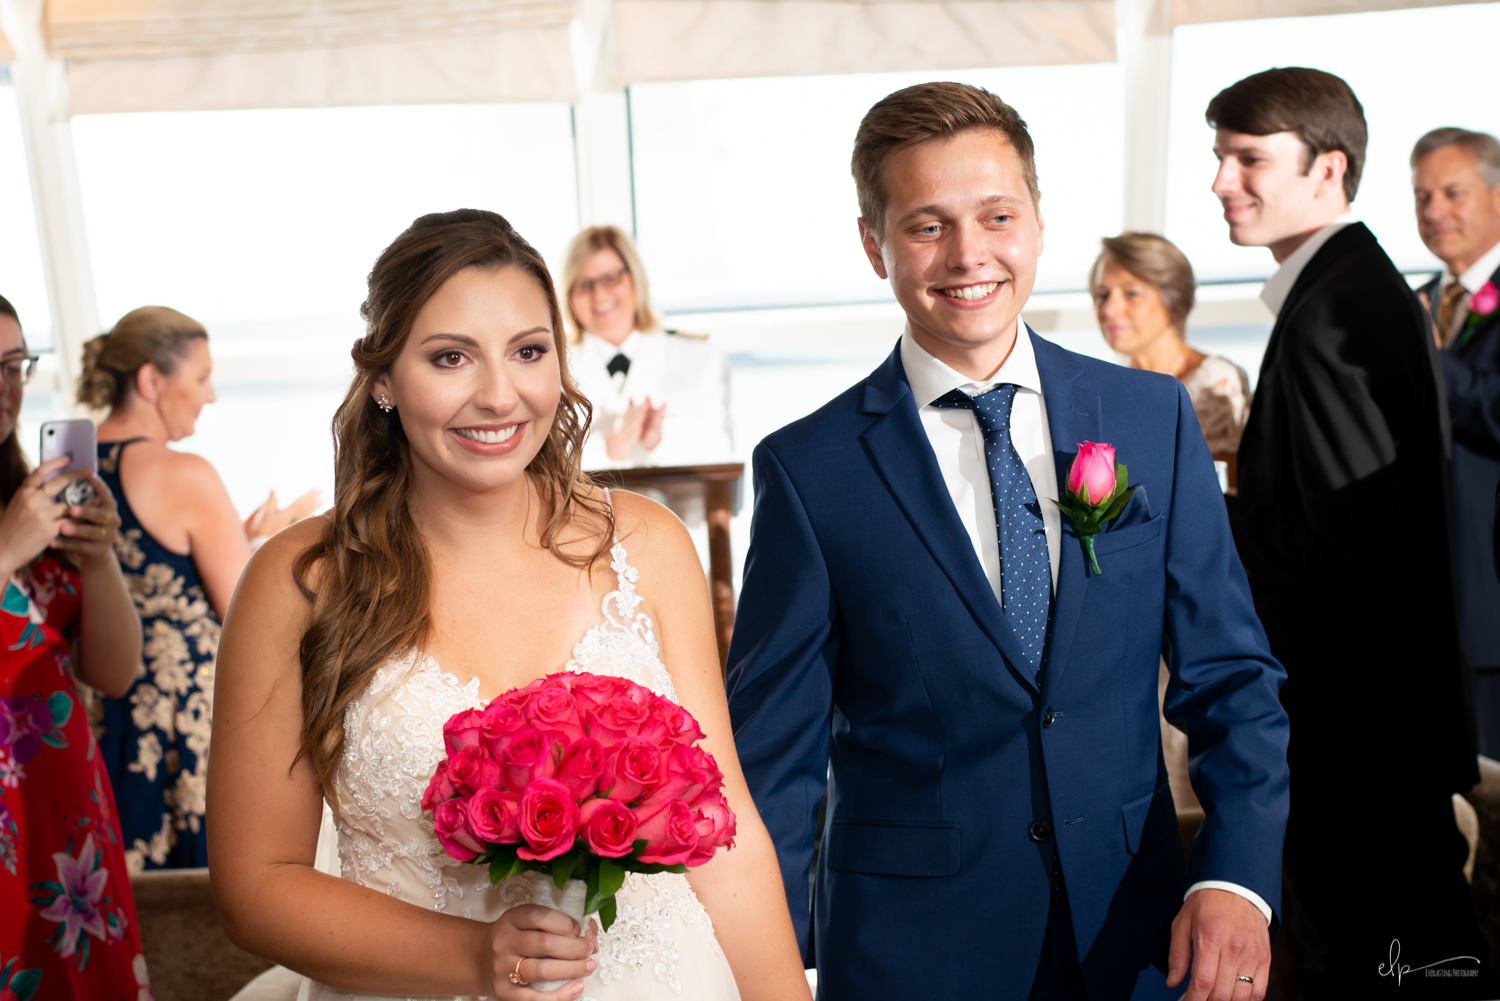 wedding ceremony photos in outlook lounge on disney cruise